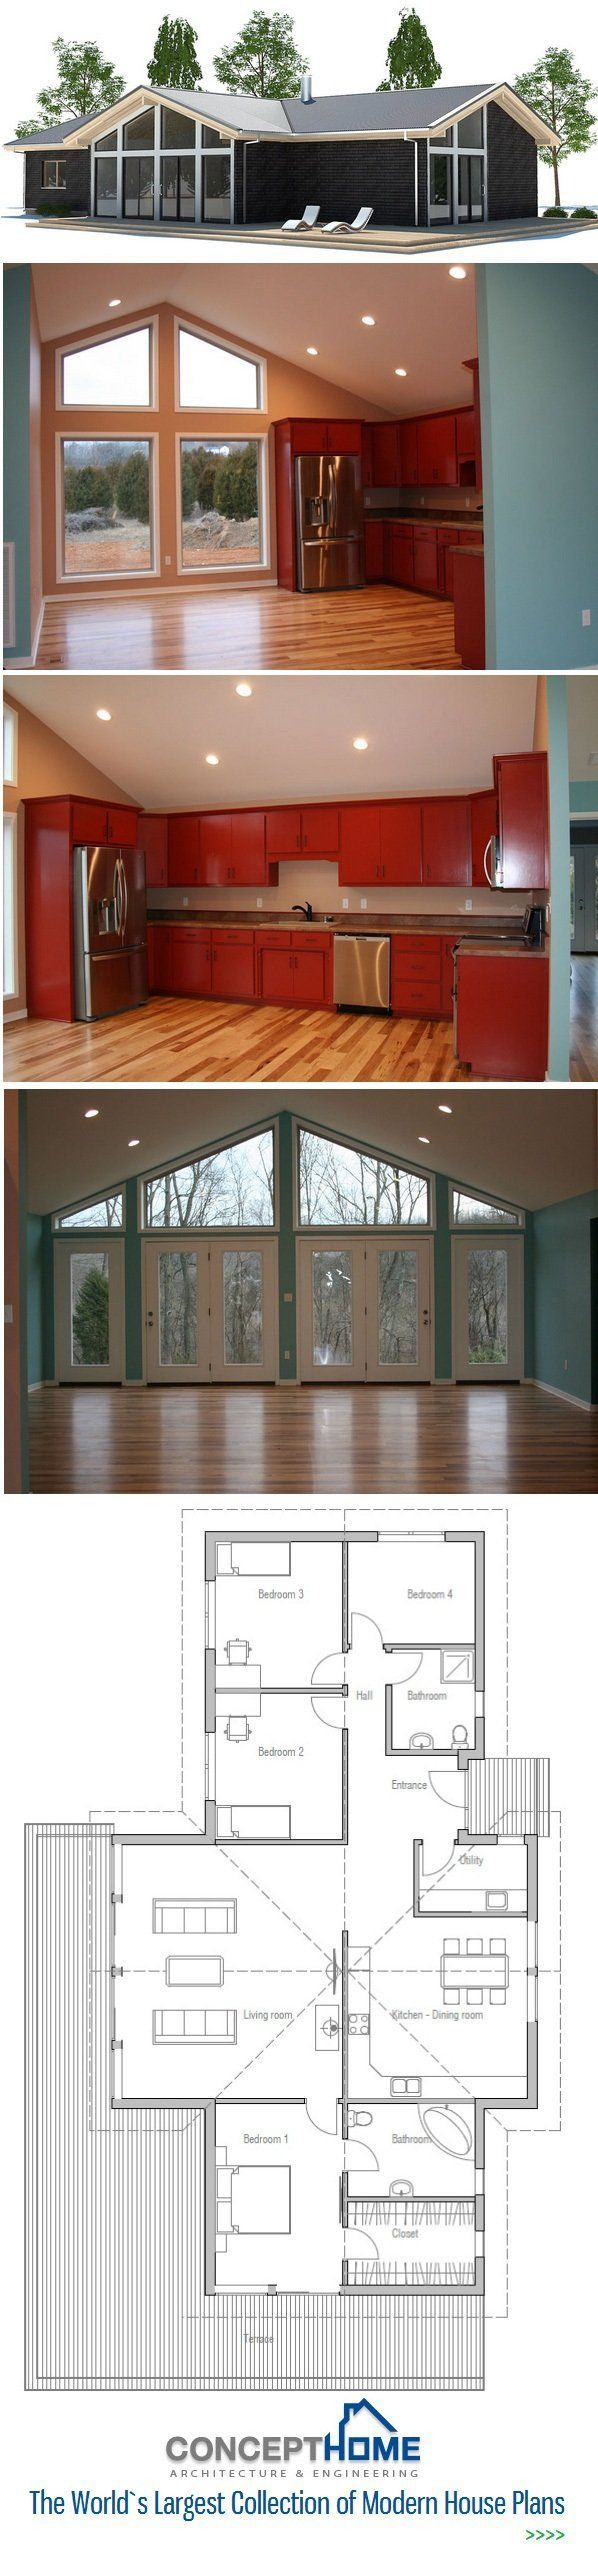 Small House Plan Floor Plan from ConceptHomecom